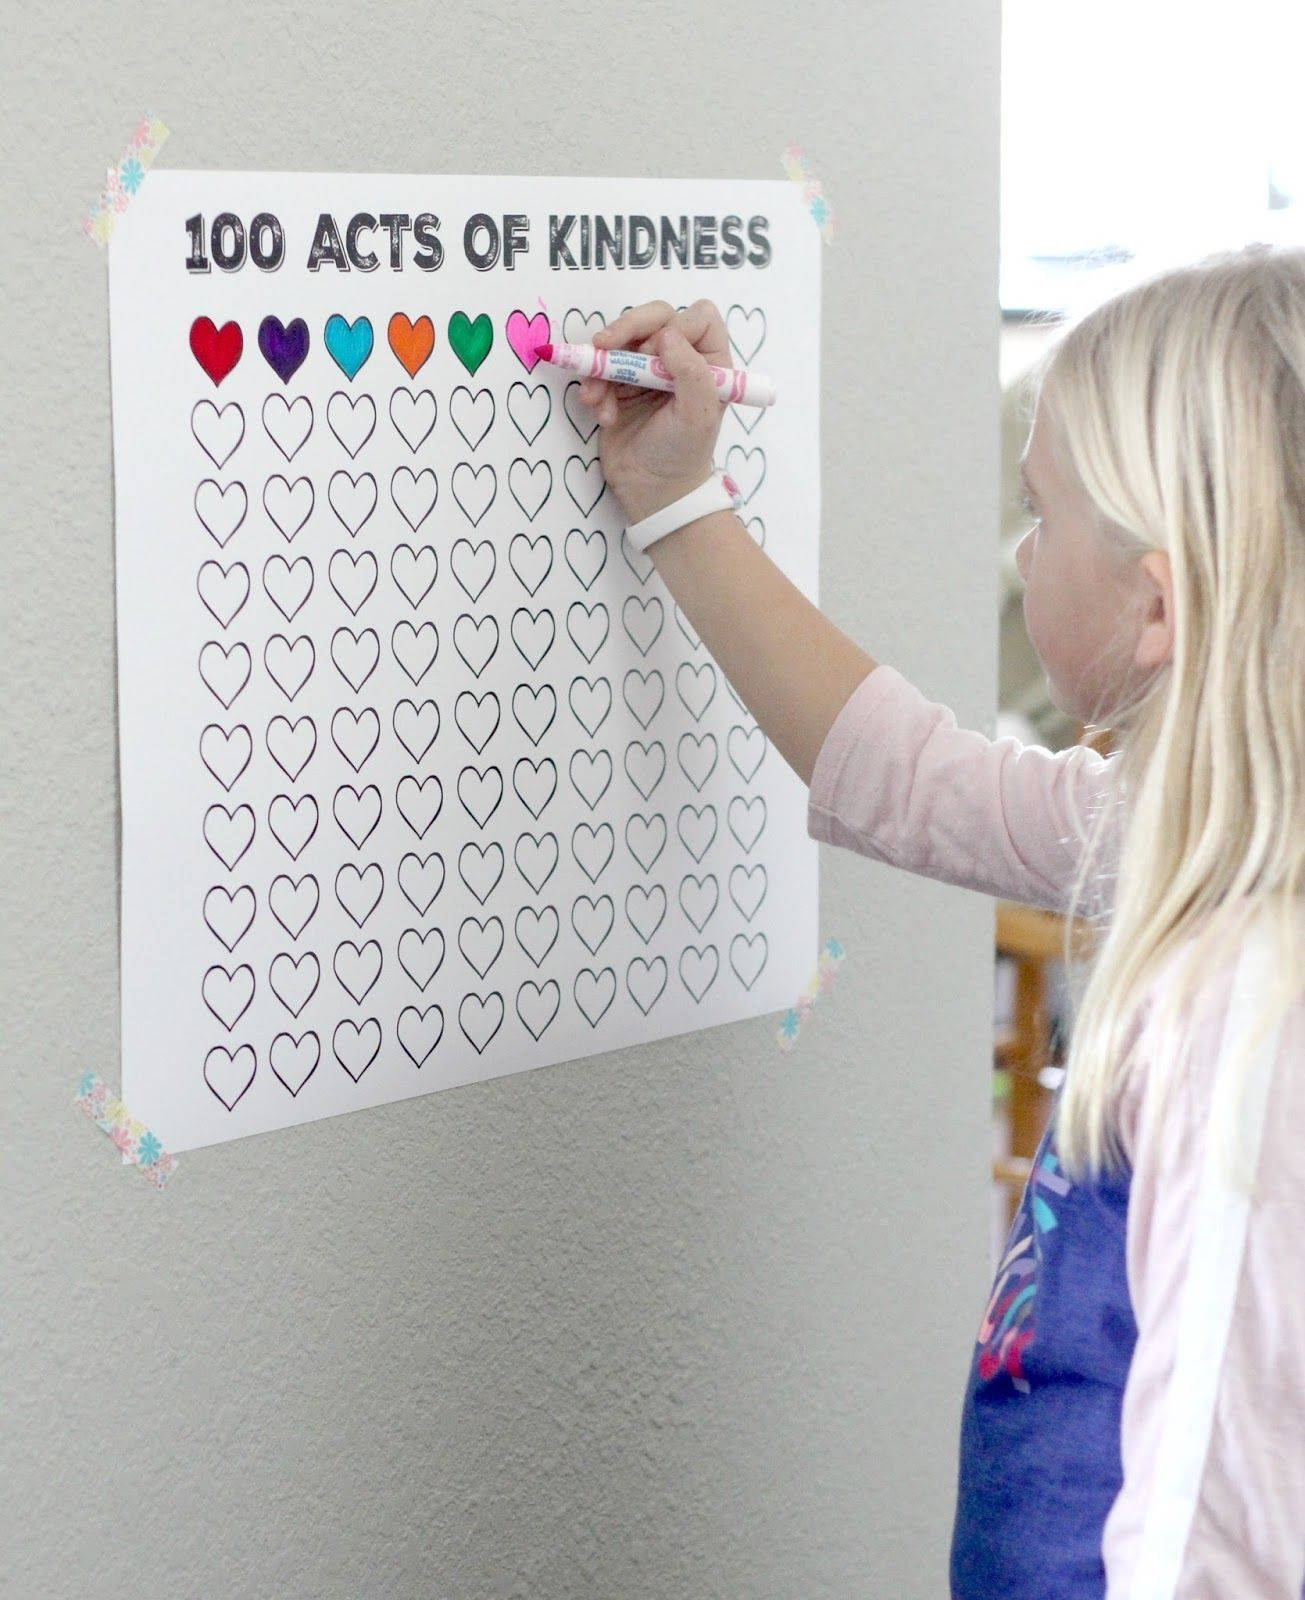 100 Acts Of Kindness Free Printable Countdown Poster 100actsofkindness Parentingteacher Kids Learning Kids And Parenting Classroom